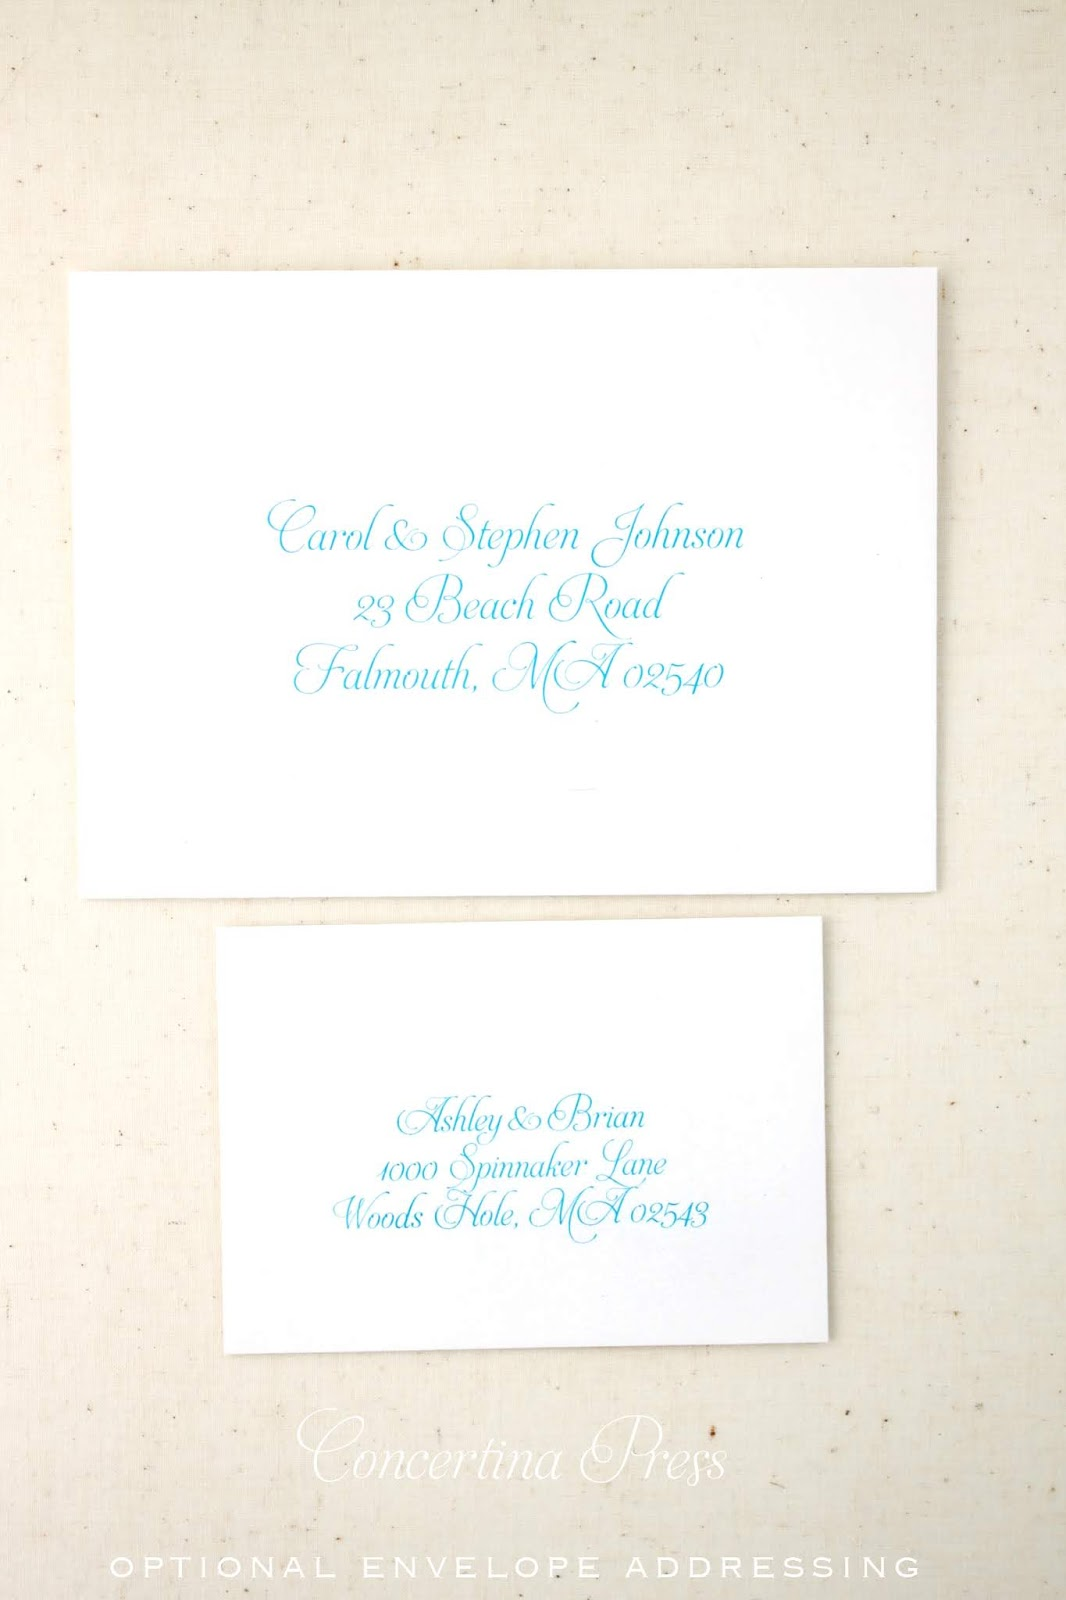 Addressed  Envelopes for Waves Beach Wedding Invitation from Concertina Press